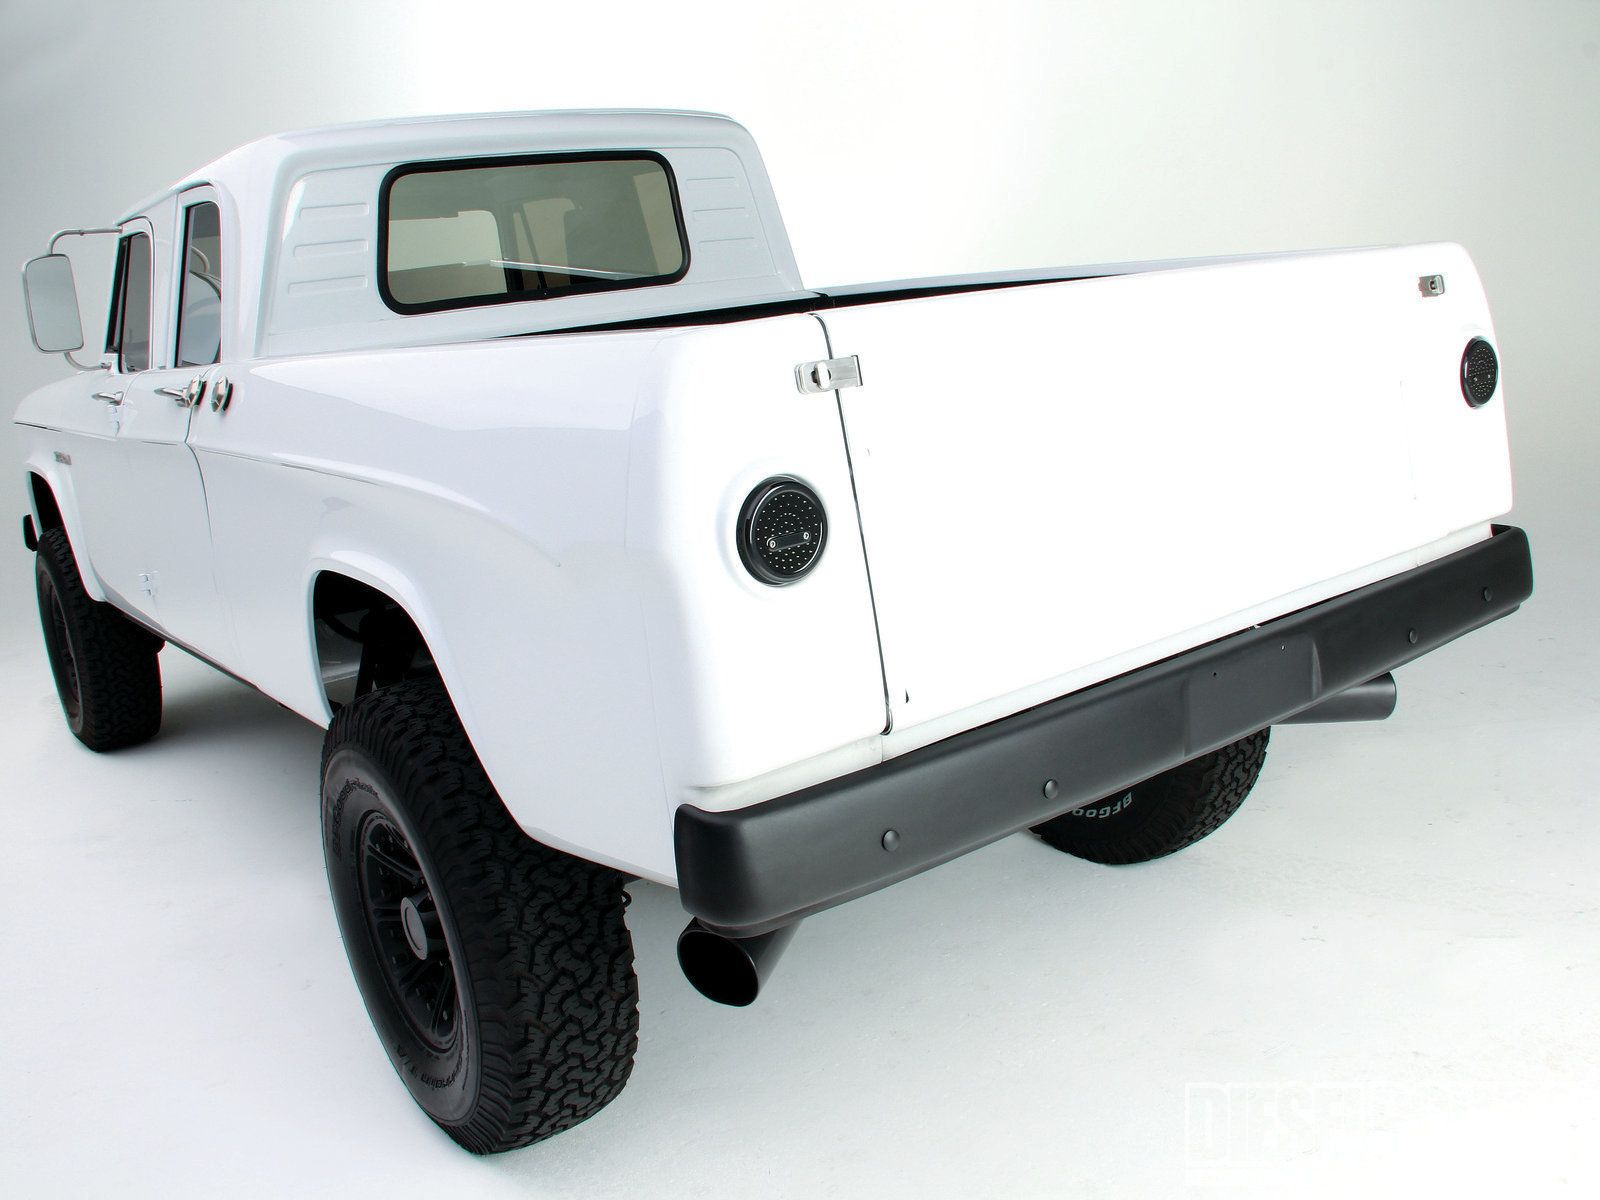 sema 2014 trucks Google Search Cool trucks, Built